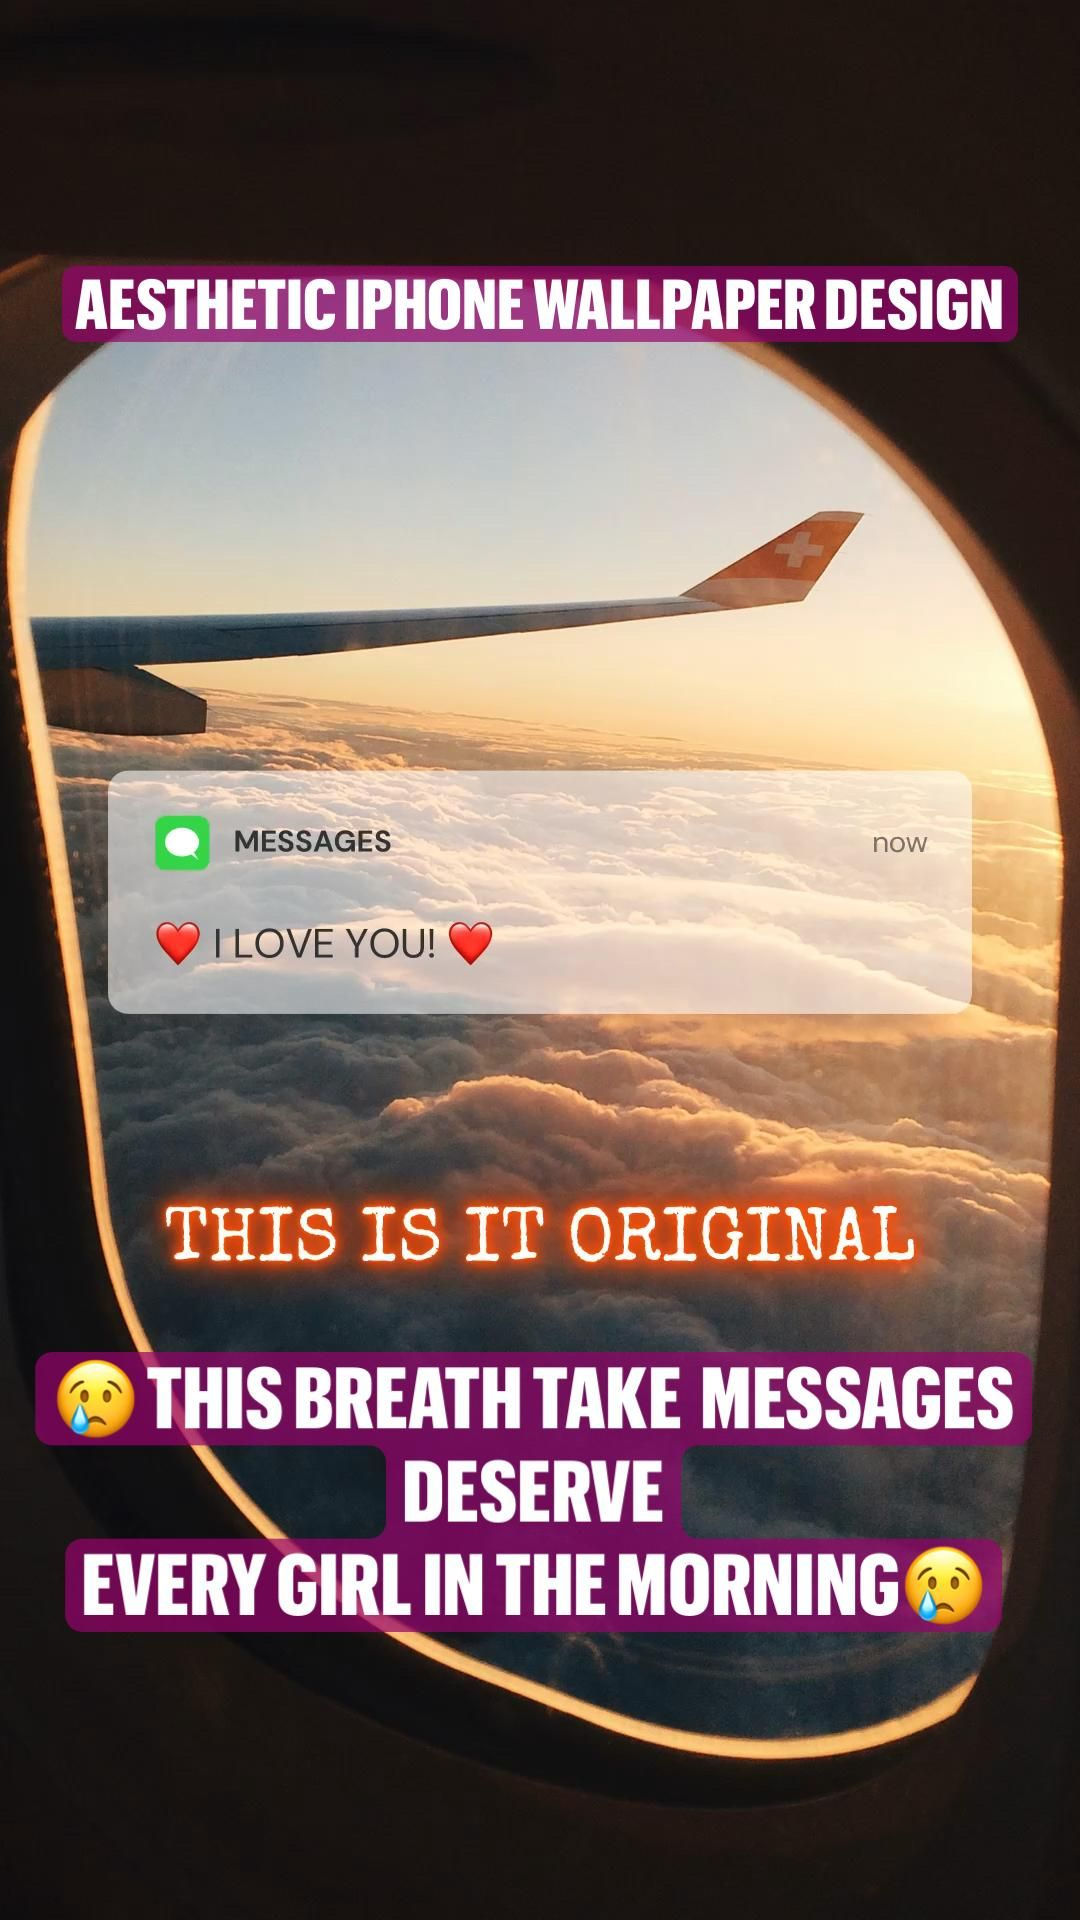 😢 THIS BREATH TAKE  MESSAGES DESERVE  EVERY GIRL IN THE MORNING😢 iPhone aesthetic wallpaper